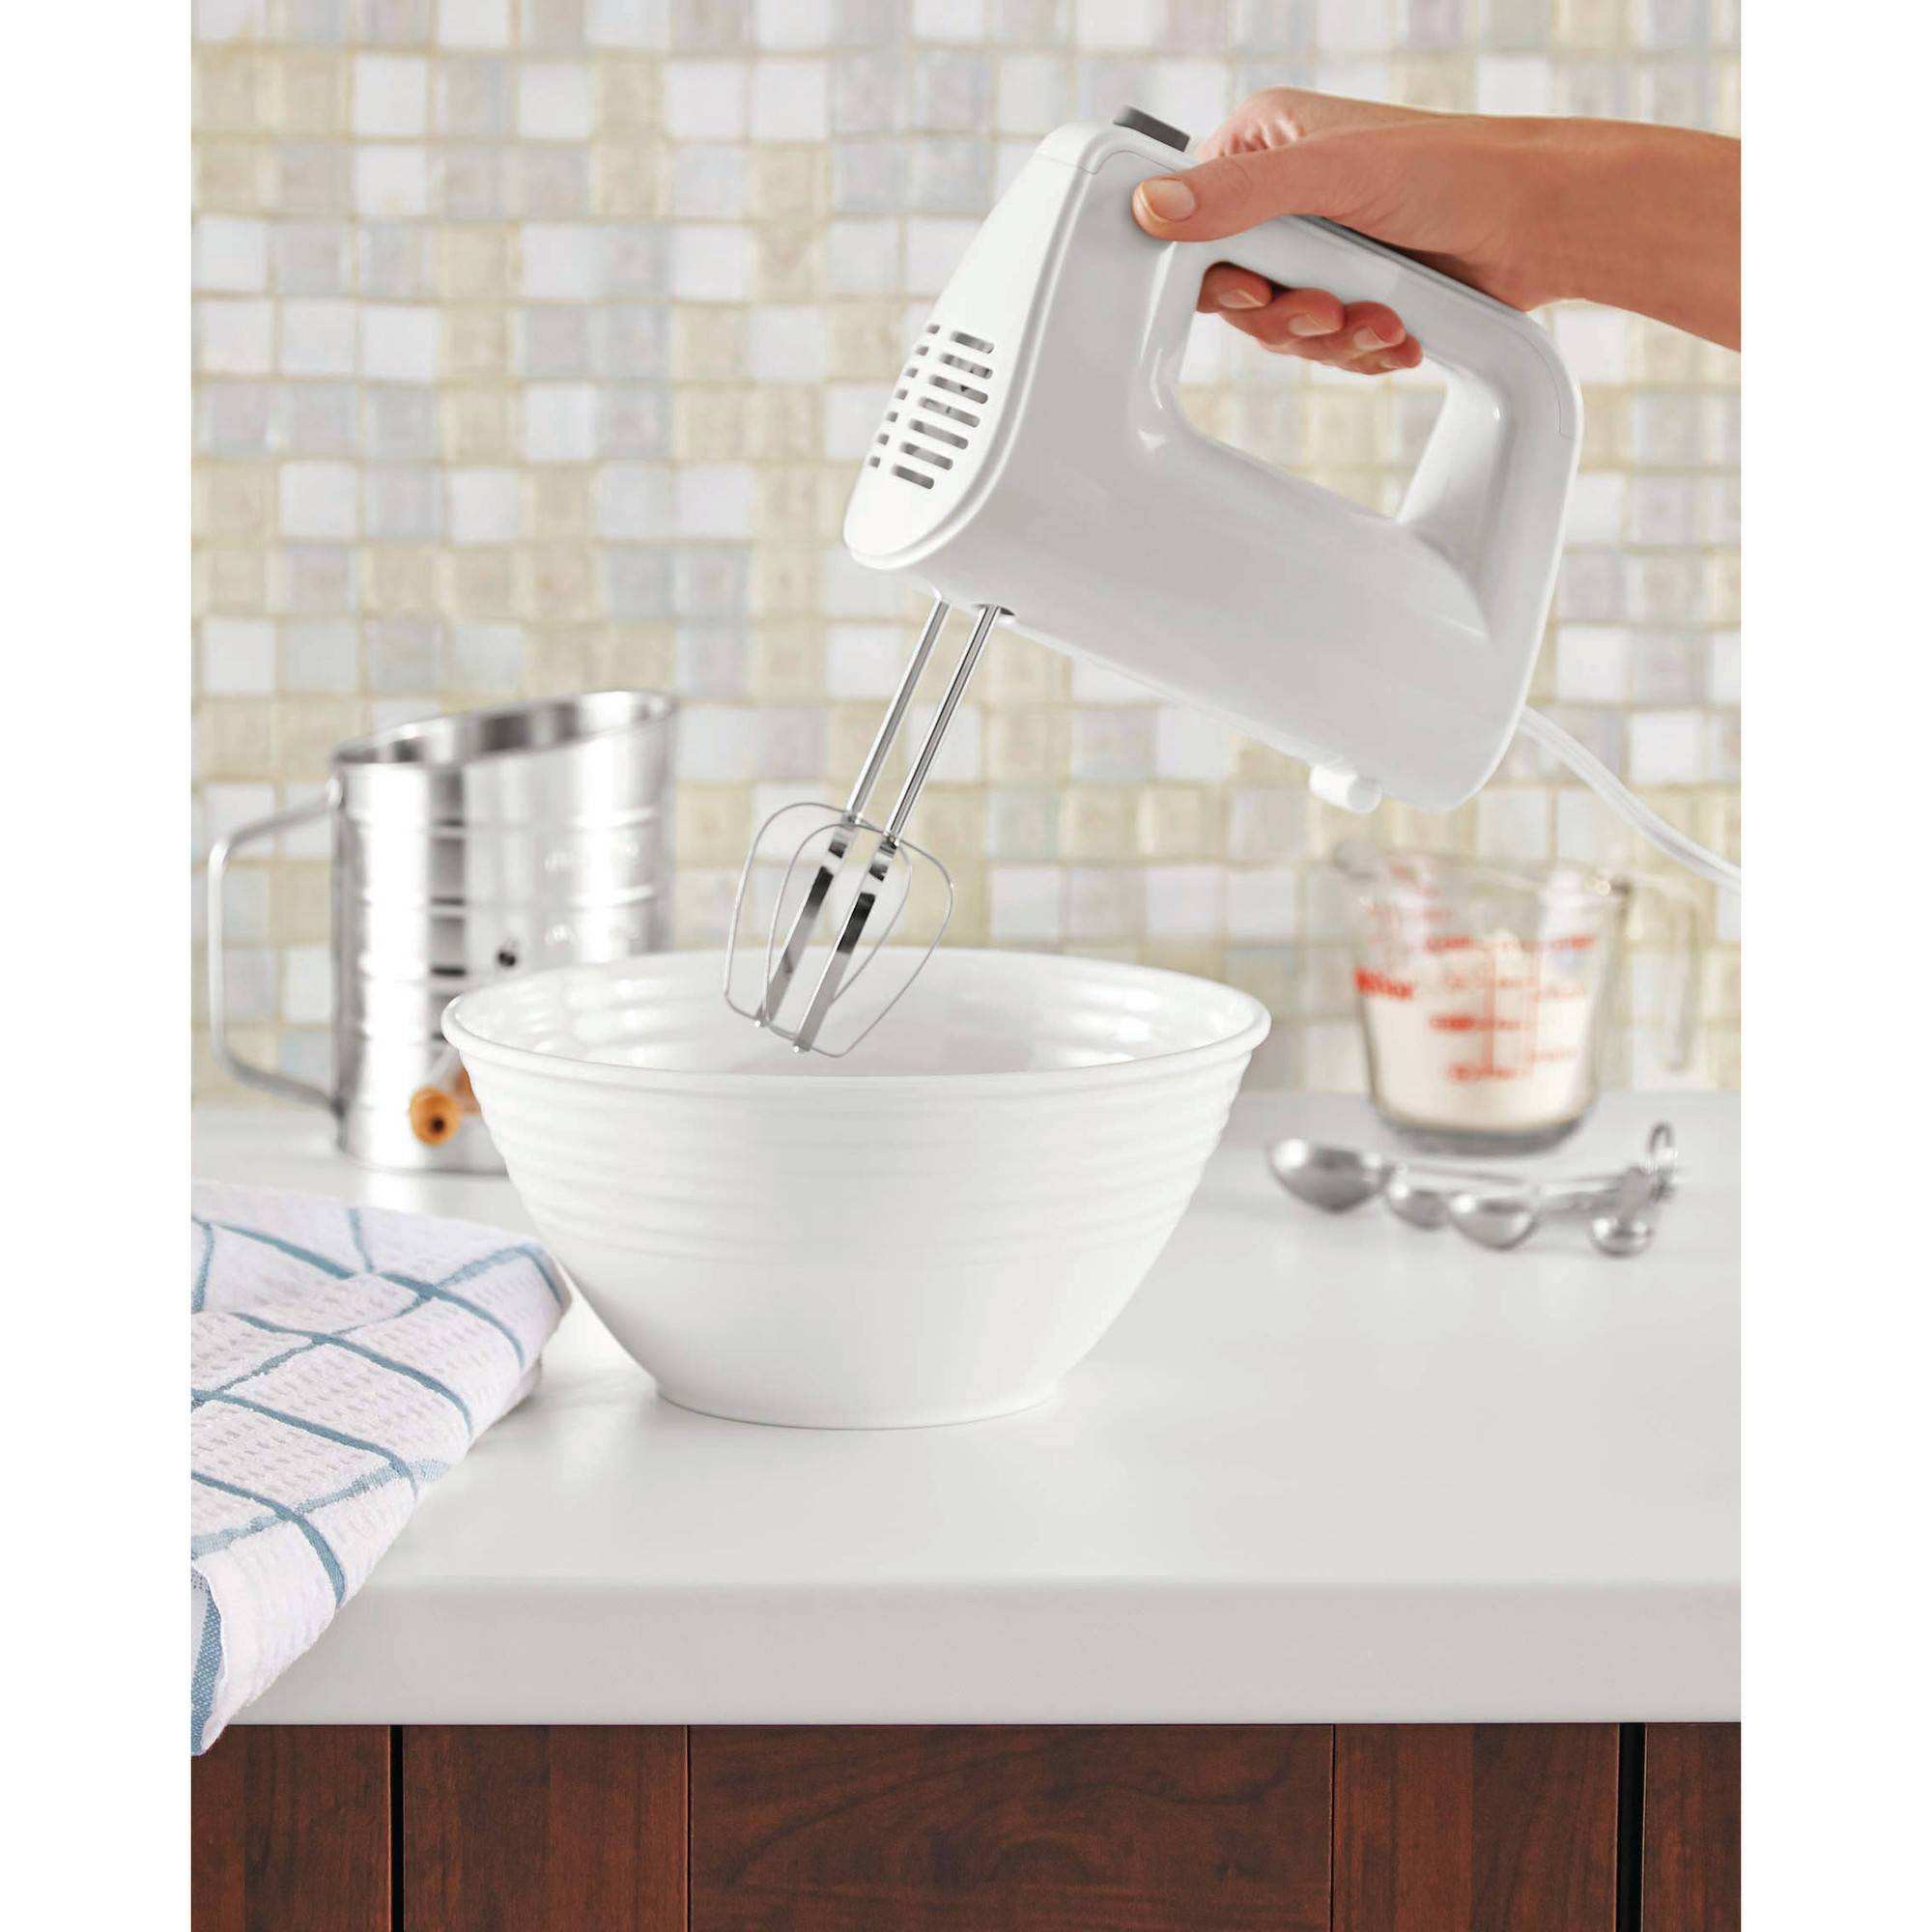 Mainstays 5-Speed Hand Mixer, White by